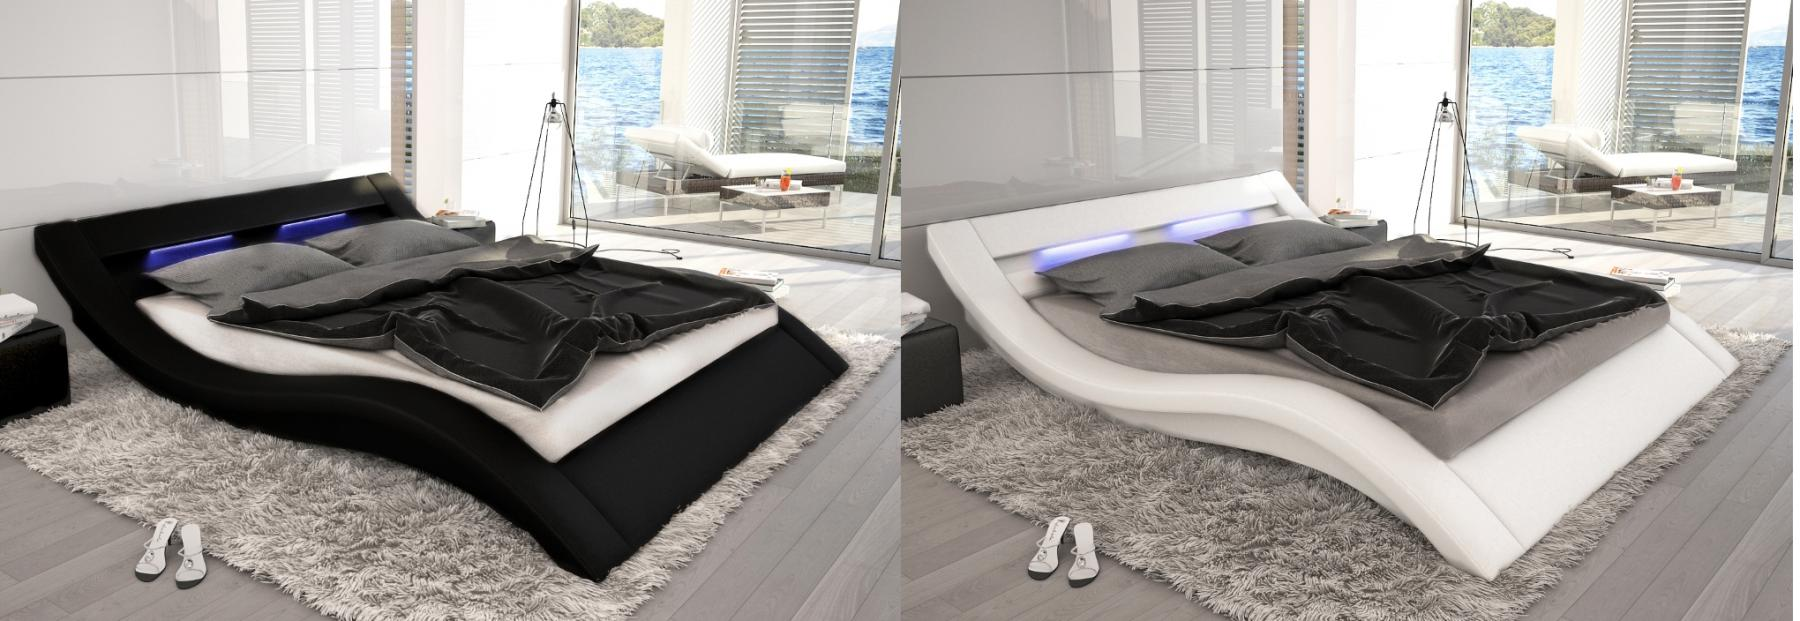 designer leder bett polsterbett monaco mit led schwarz oder weiss wellenf rmiges lederbett. Black Bedroom Furniture Sets. Home Design Ideas